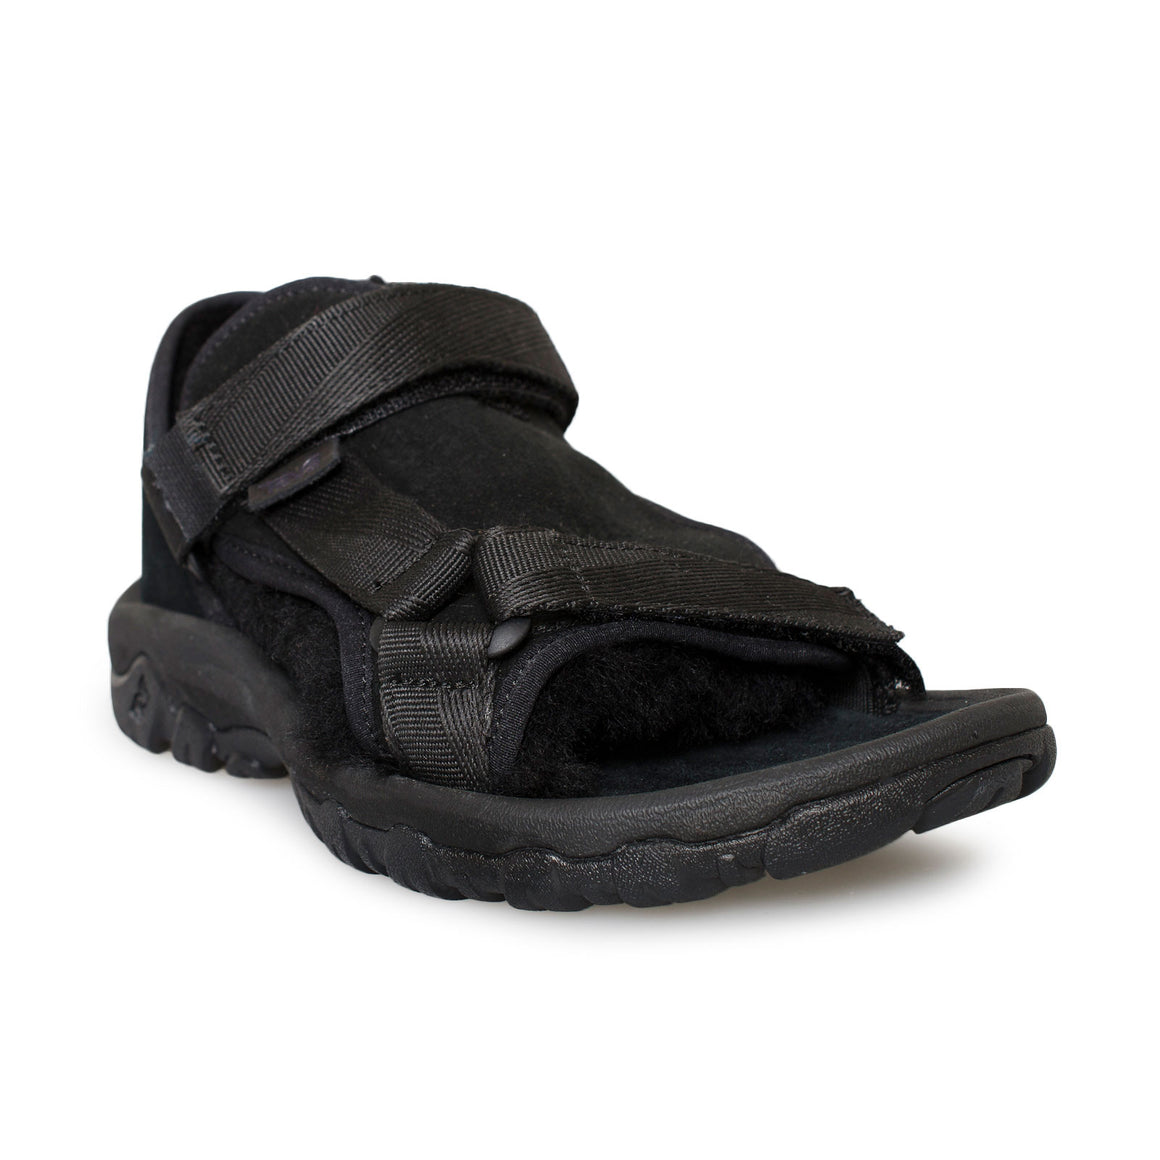 UGG/TEVA Collaboration Black Sandal